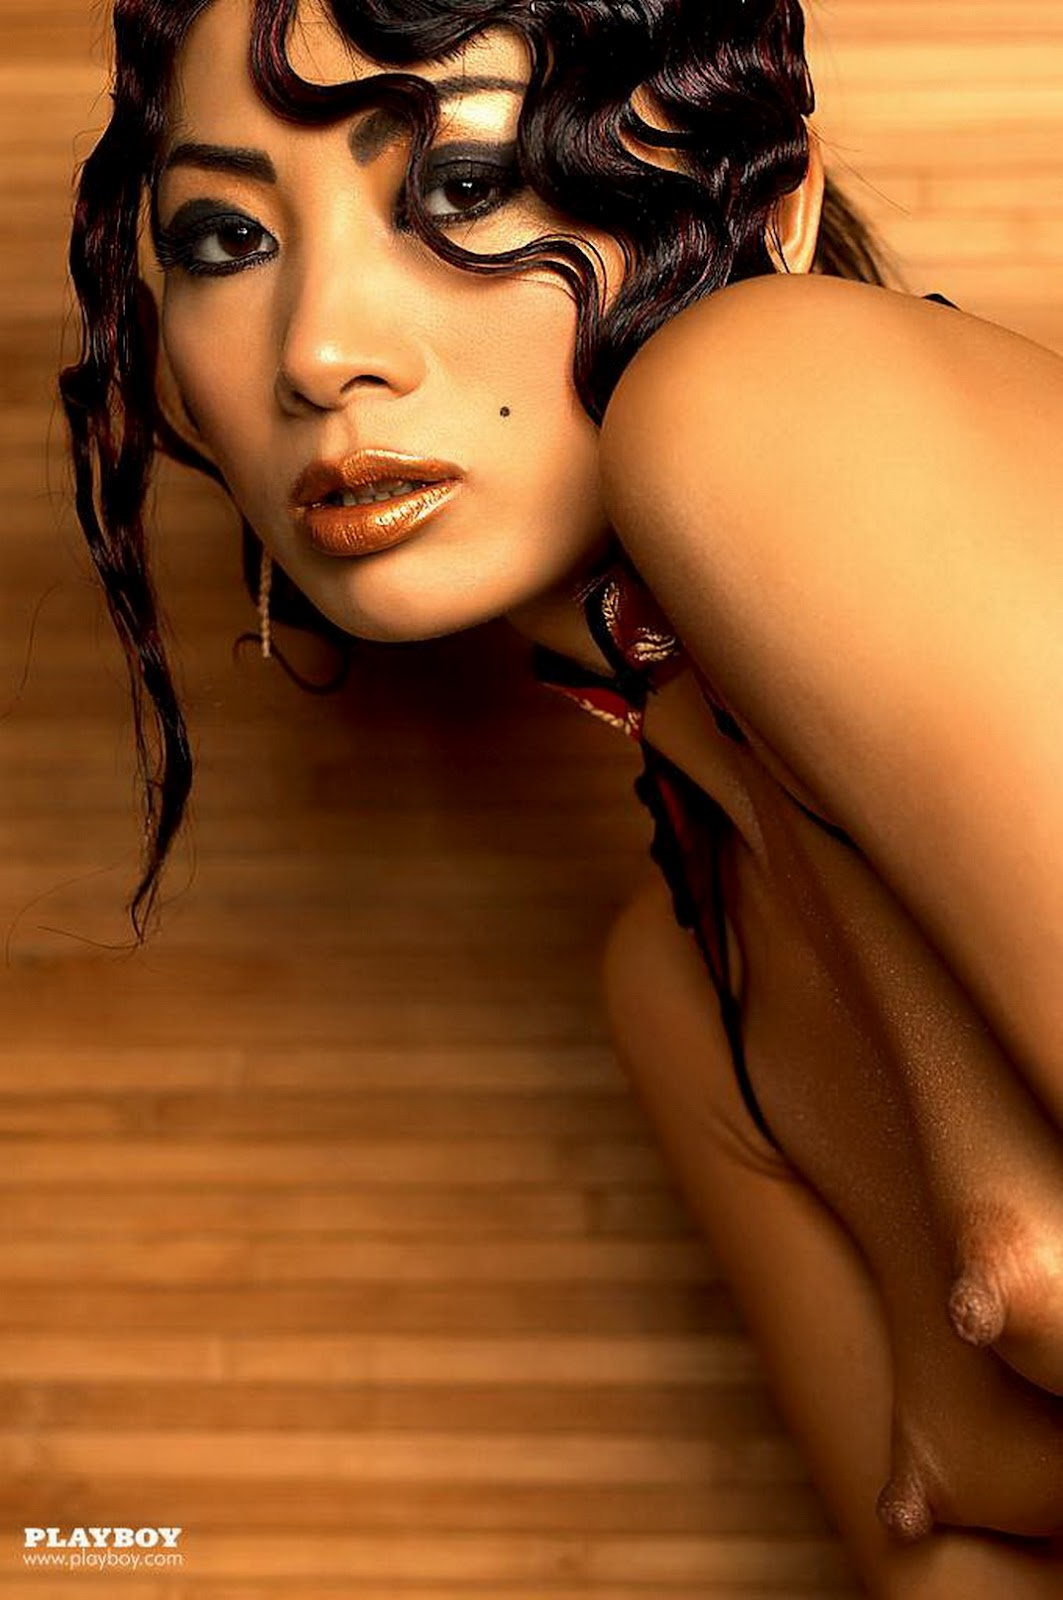 Bai Ling, the Crow, nude. Posted by rounge irung at 10:59 PM &. Email ...: cevebube14.blog.com/2013/08/01/bai-ling-nude